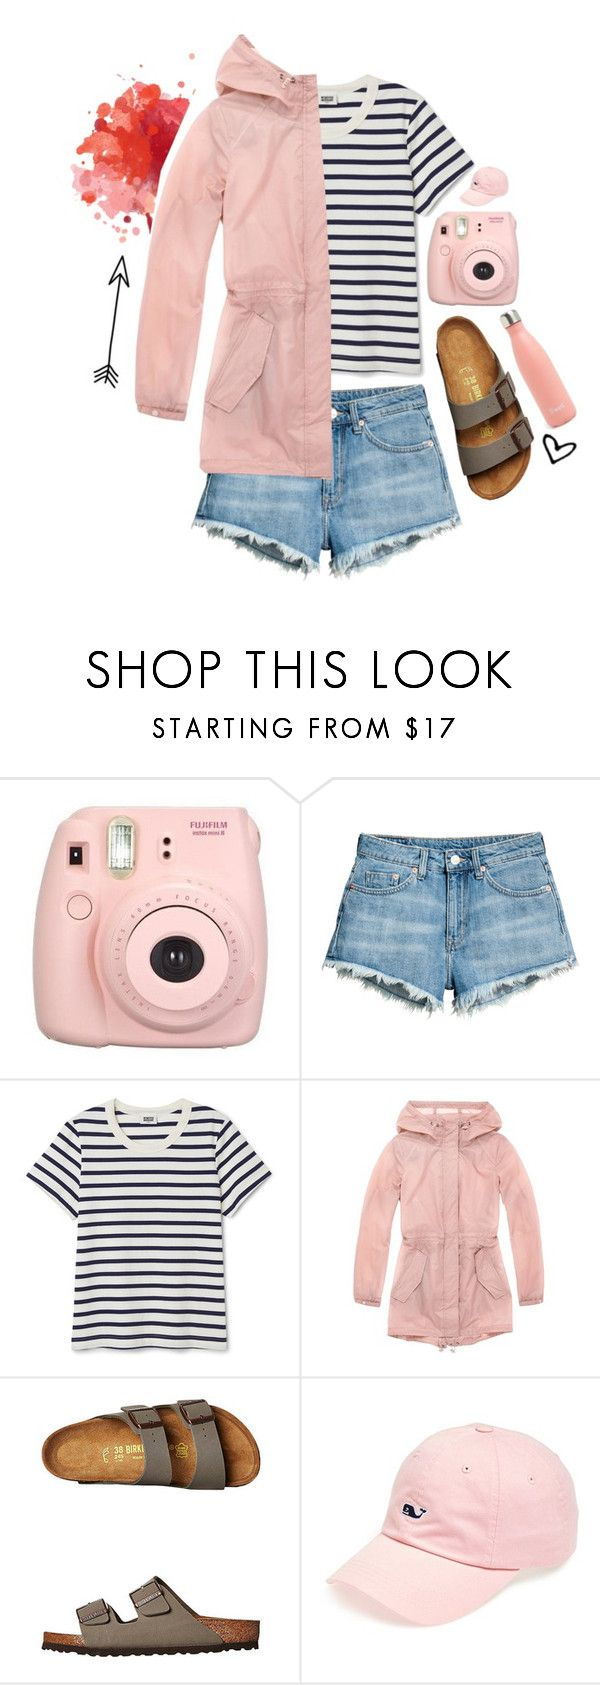 """""""Going Camping!"""" by pinkrasberry ❤ liked on Polyvore featuring Fujifilm, Andrew Marc, Birkenstock and Vineyard Vines"""